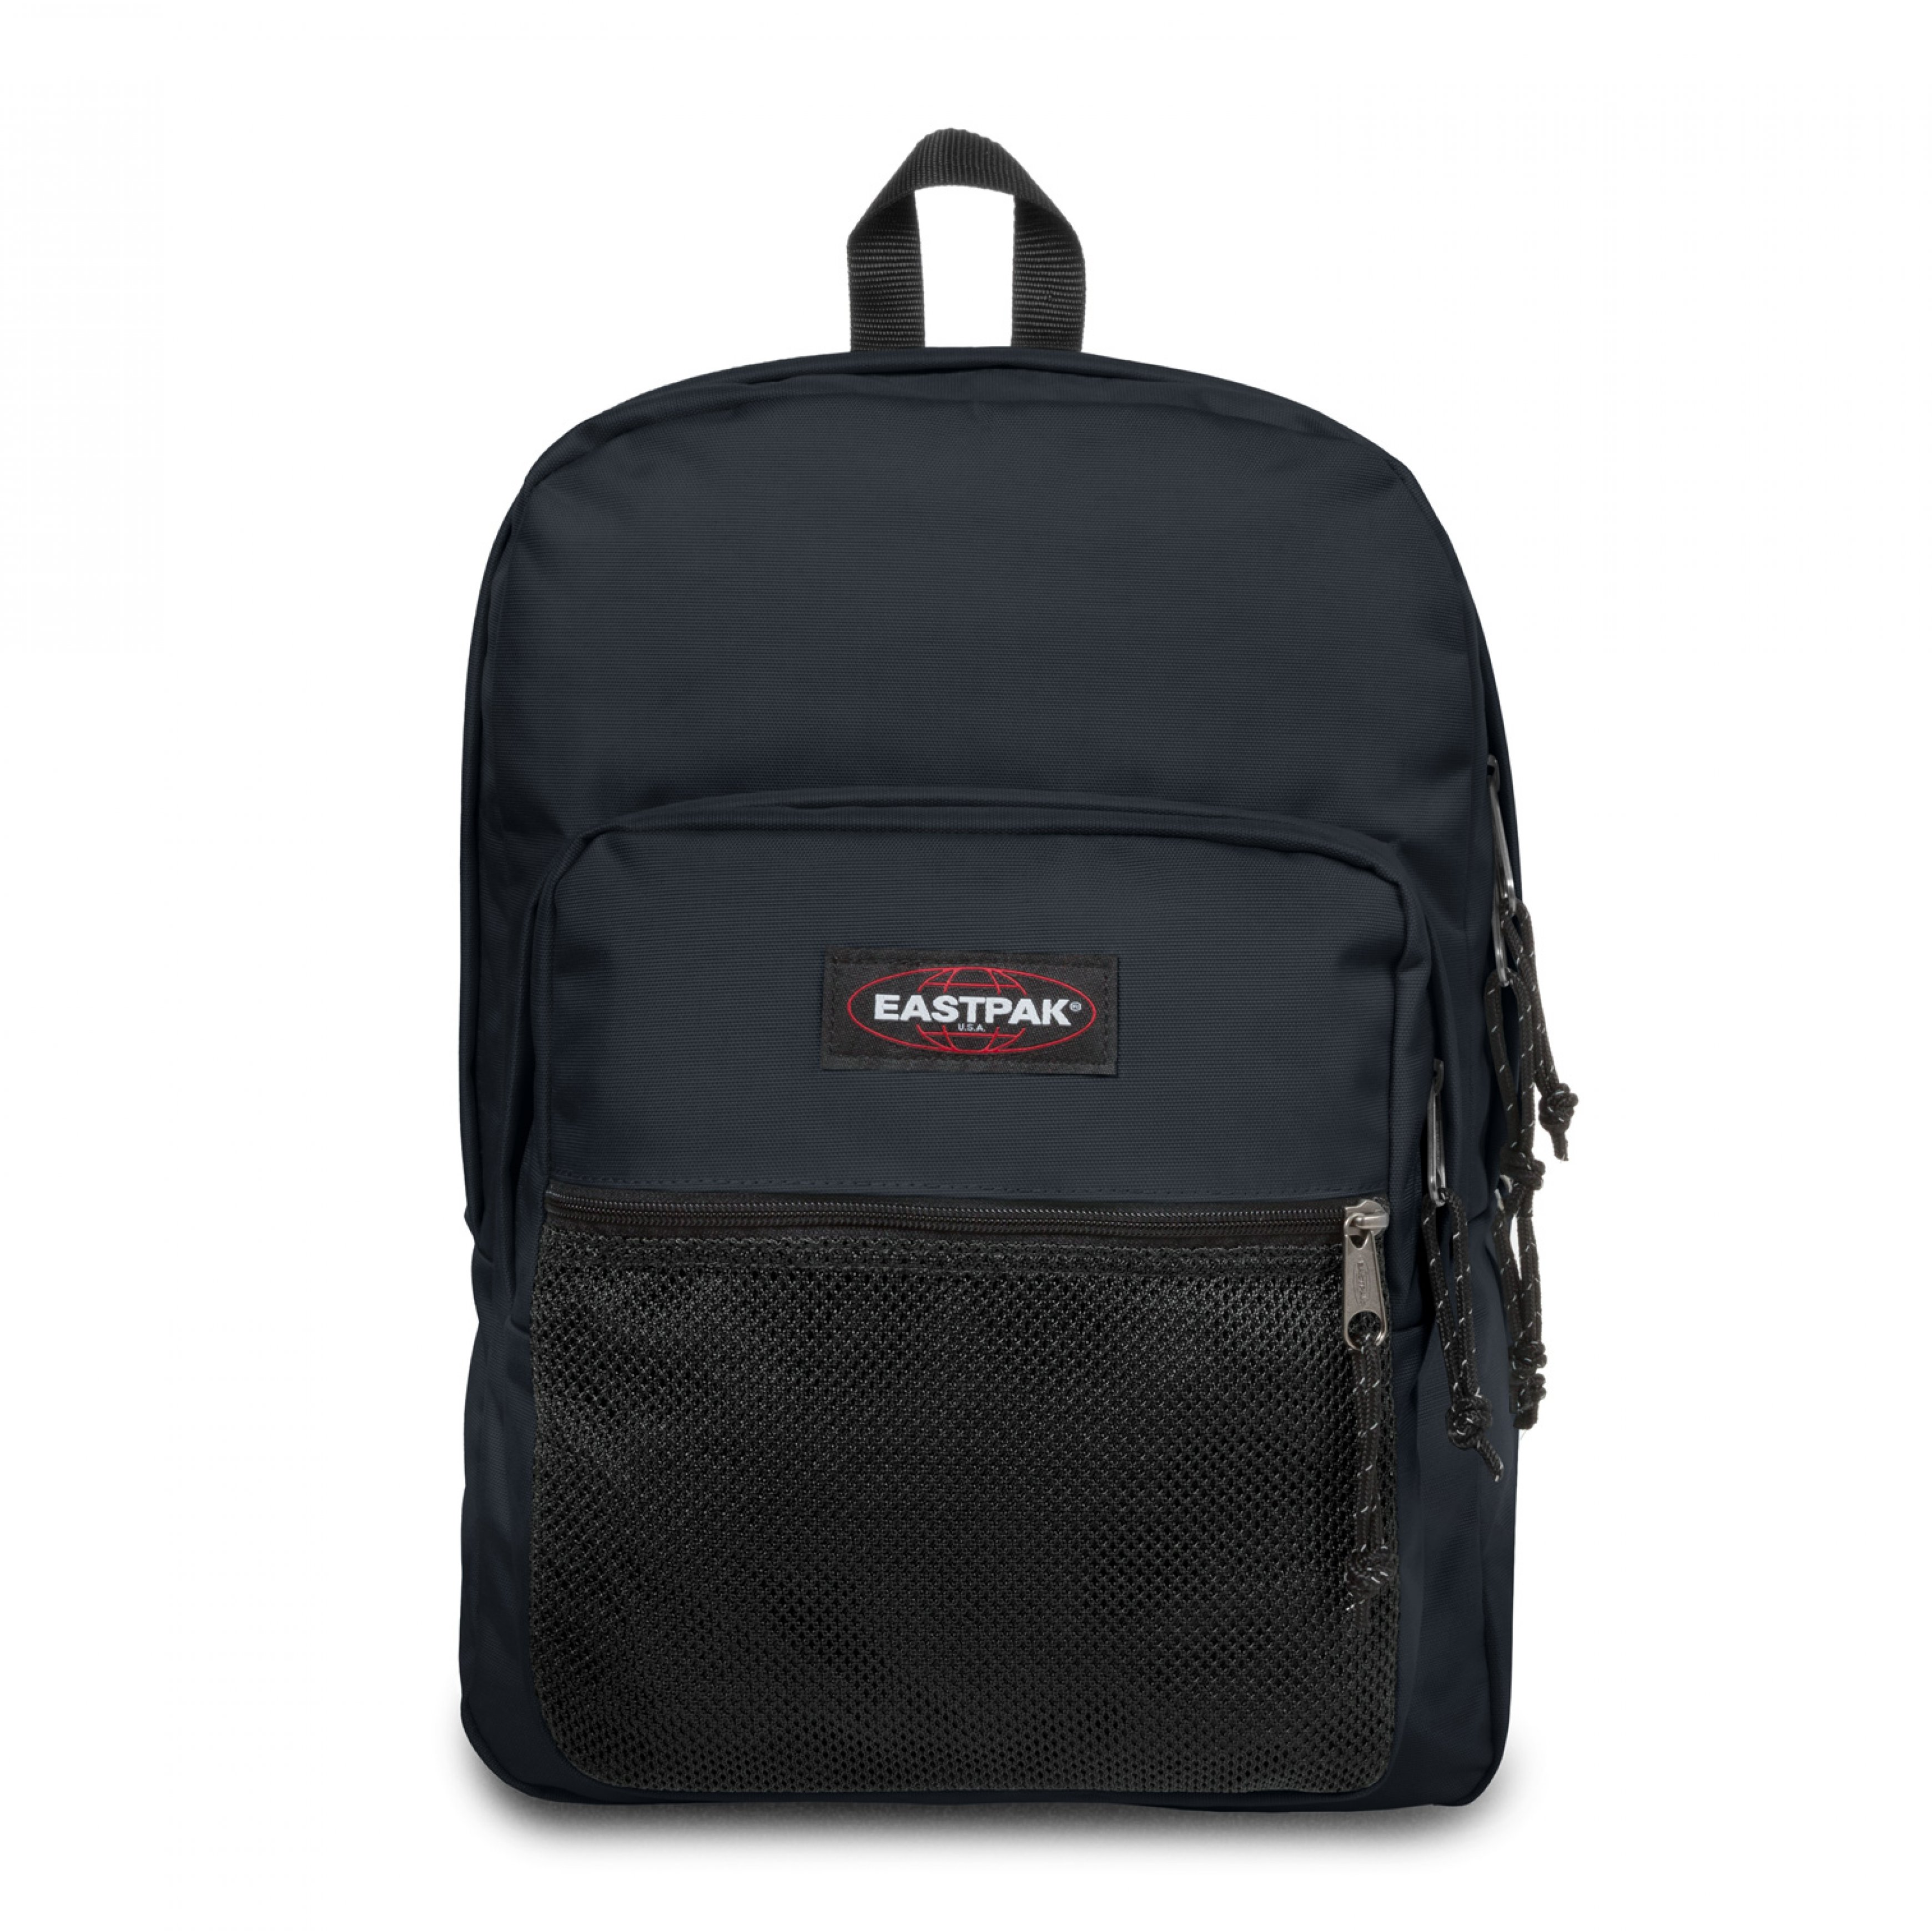 [EASTPAK] AUTHENTIC 백팩 피나클 EKABA07 22S